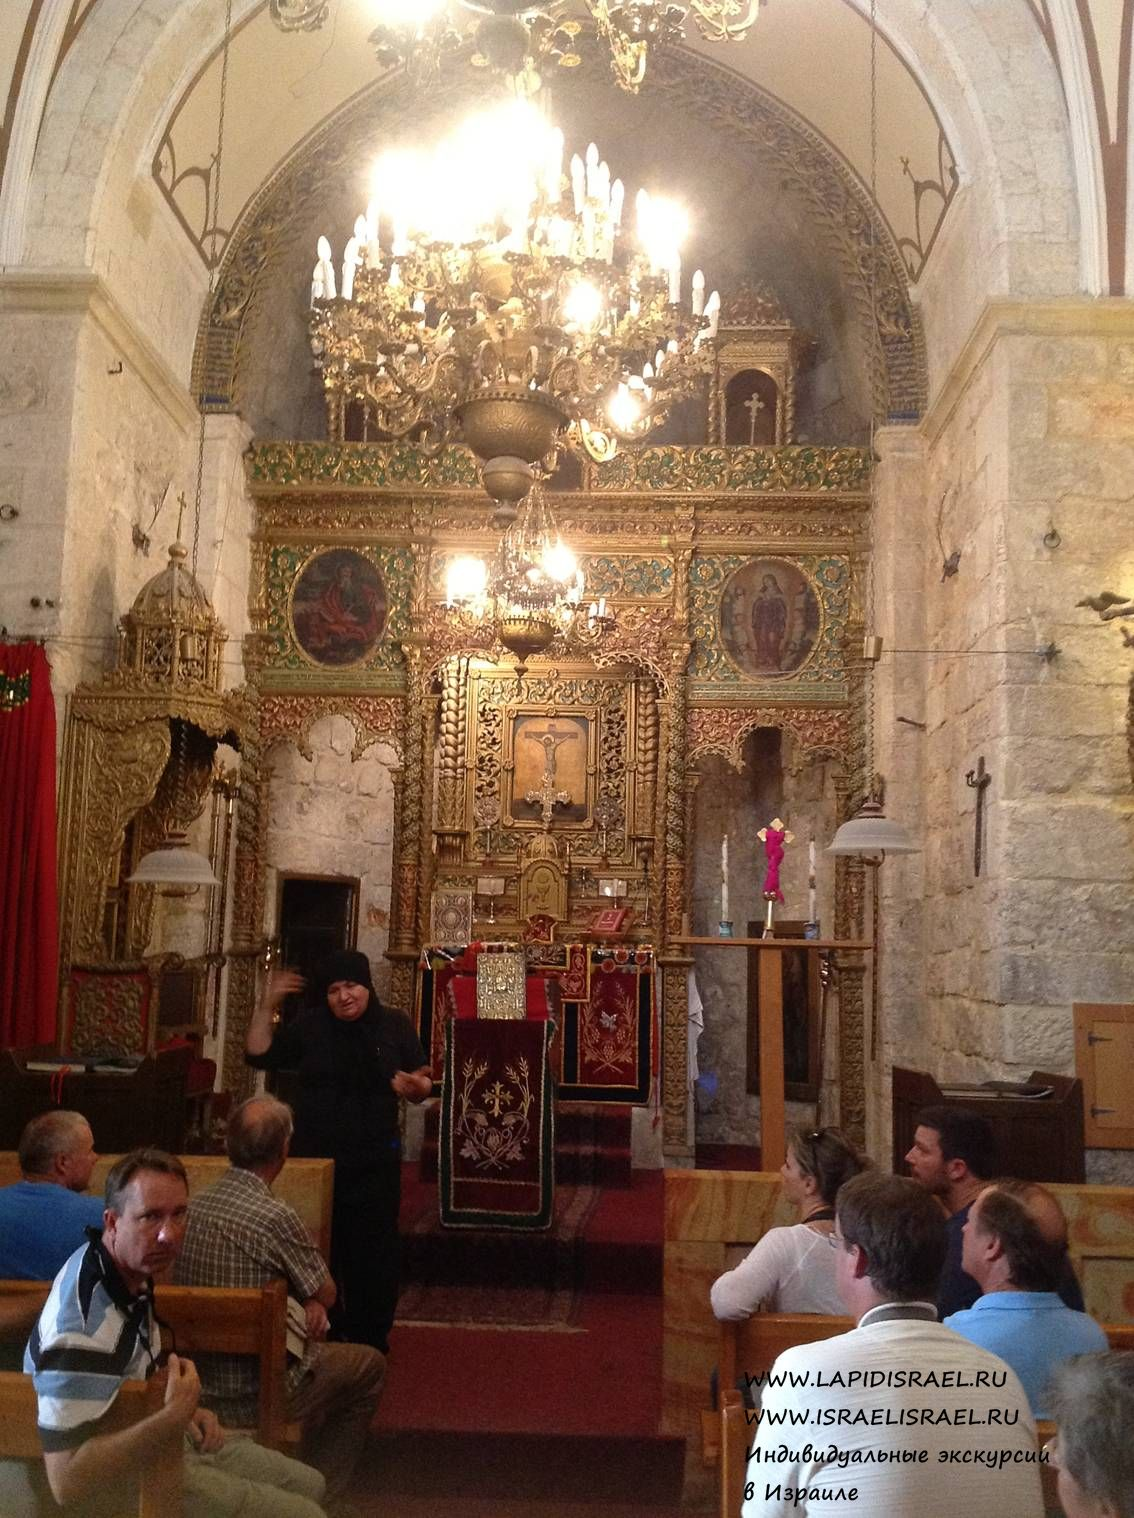 Israel Assyrian Church